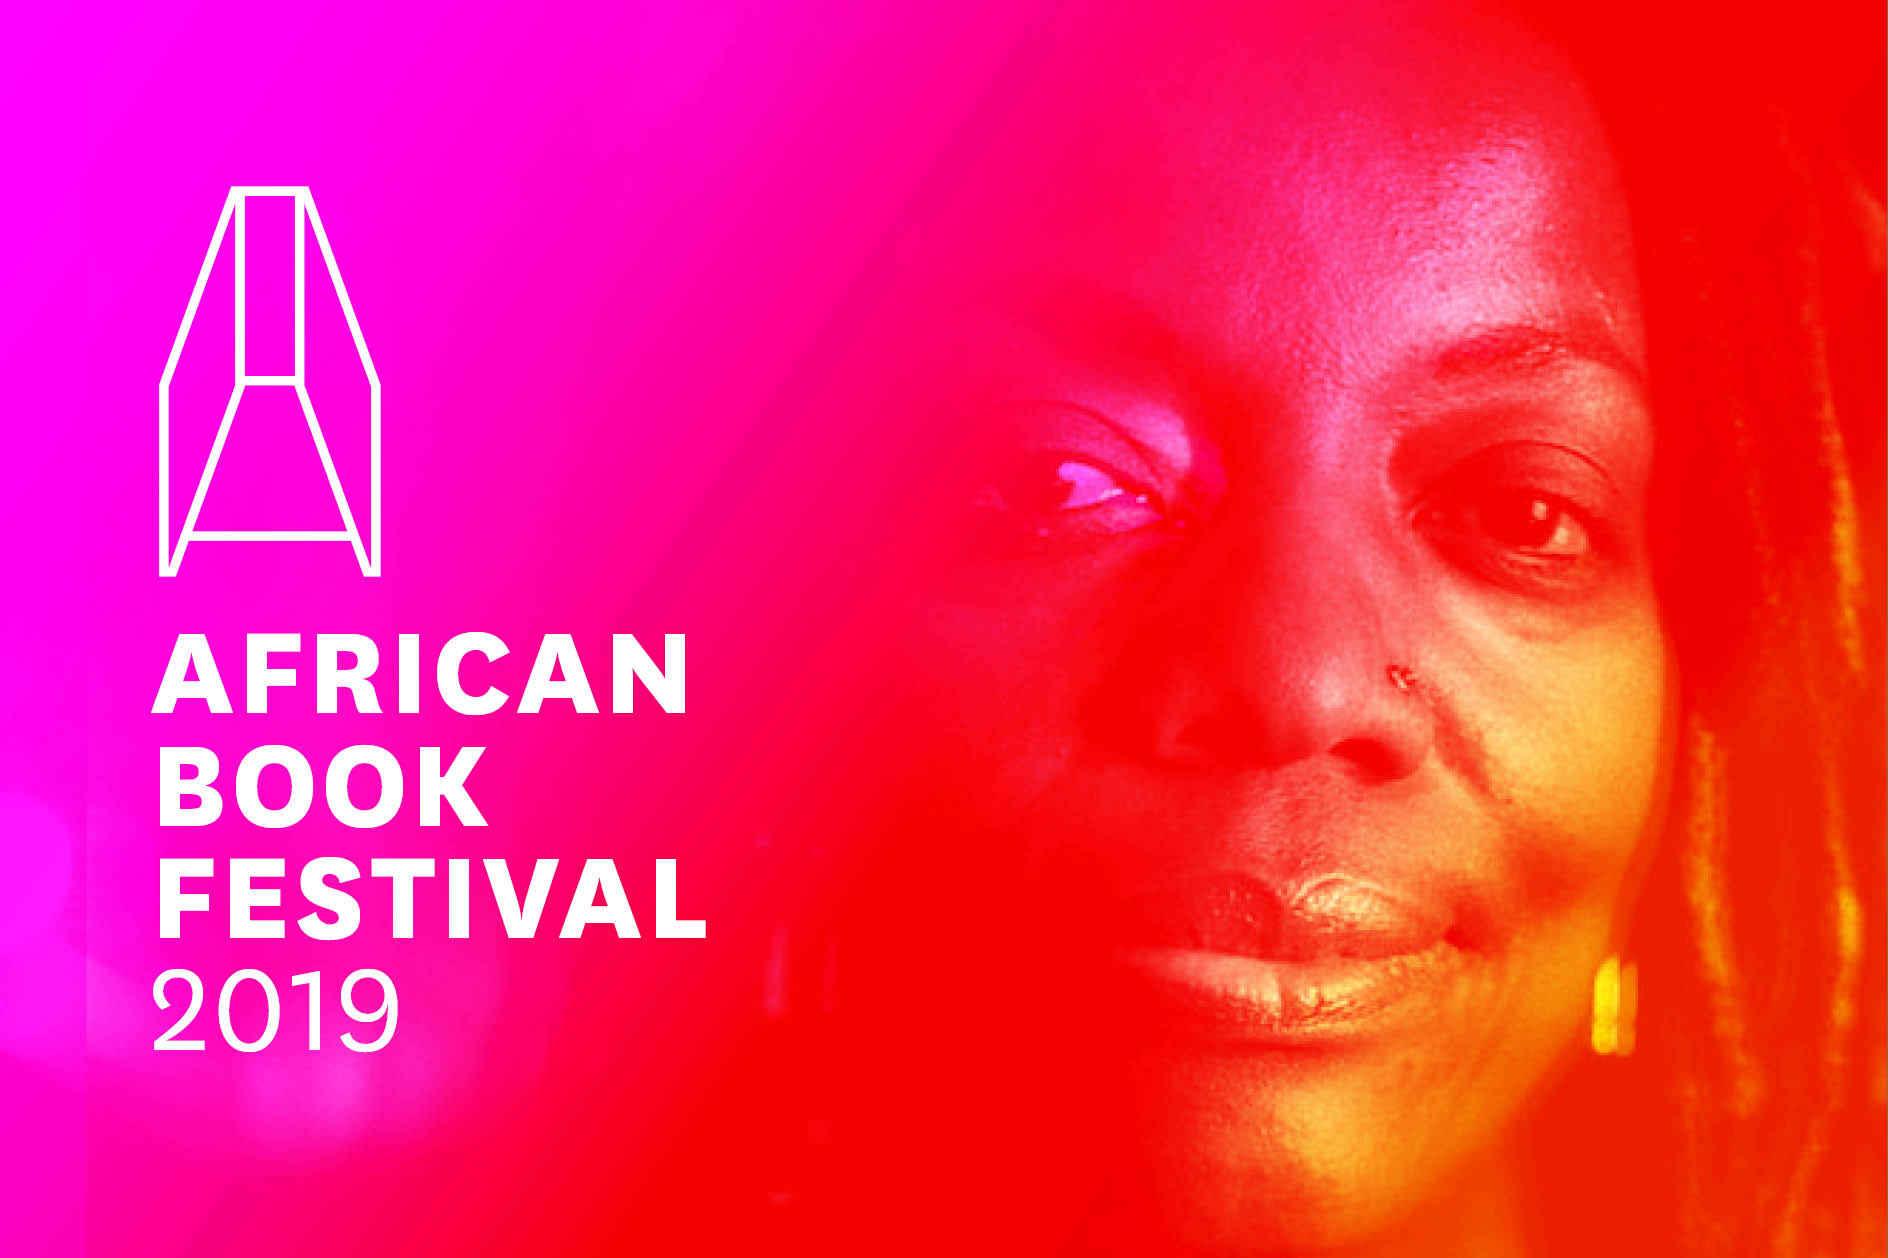 African Book Festival Berlin 2019 - Transitioning from Migration